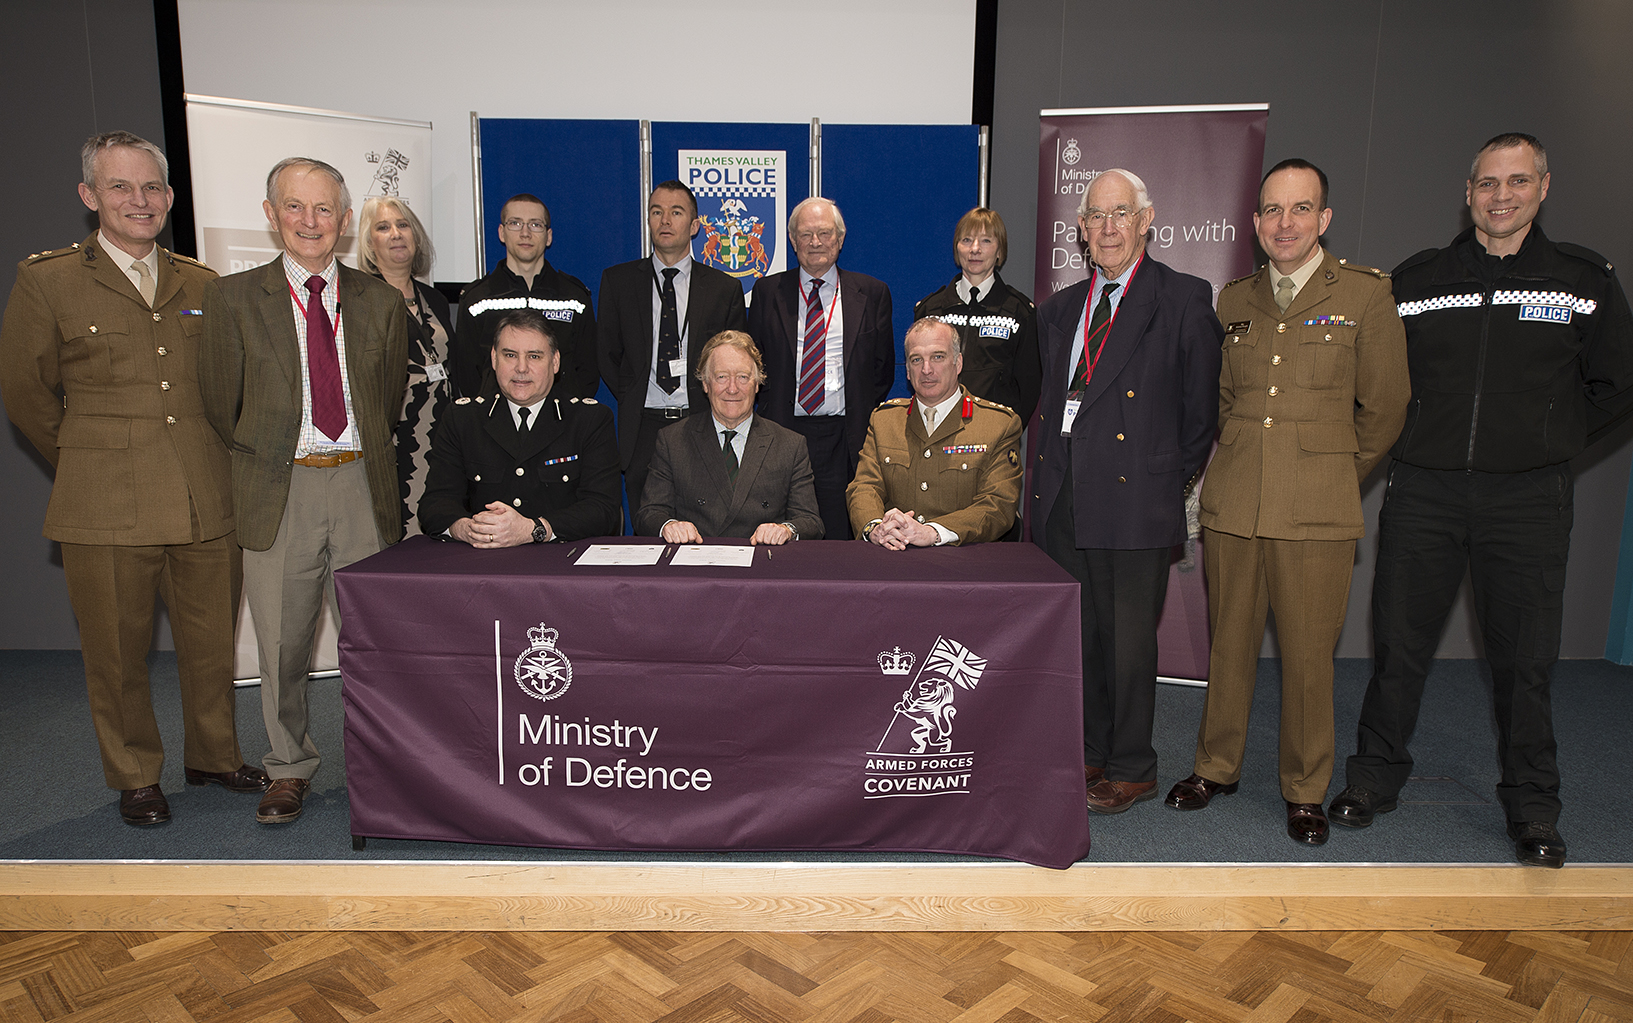 Thames Police Sign Armes Forces Covenant